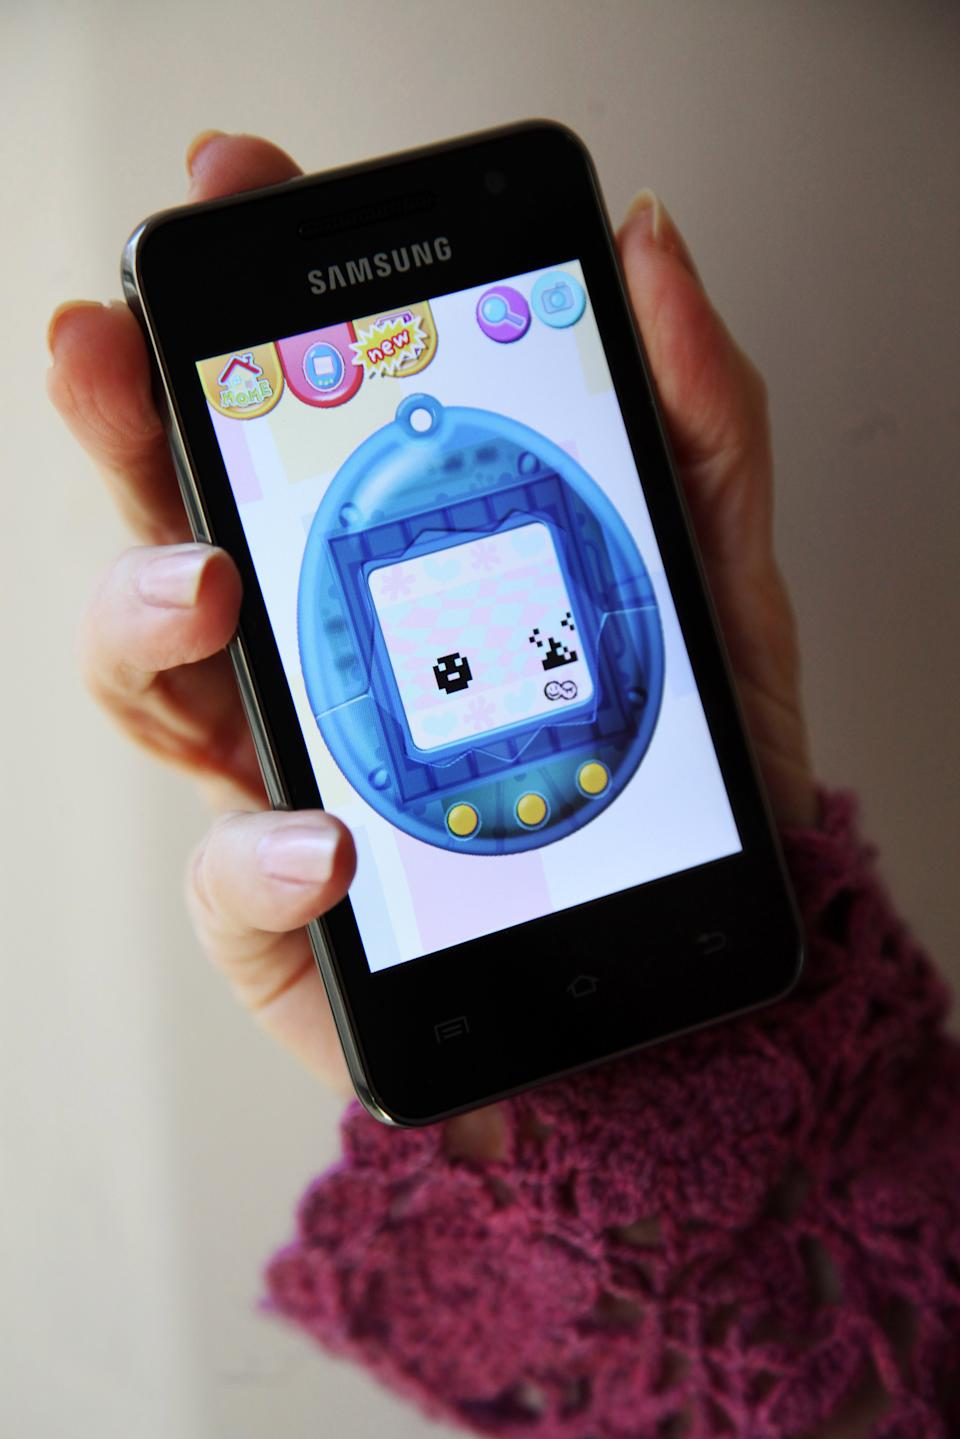 Tamagotchi returns: Electronic pet reborn as app